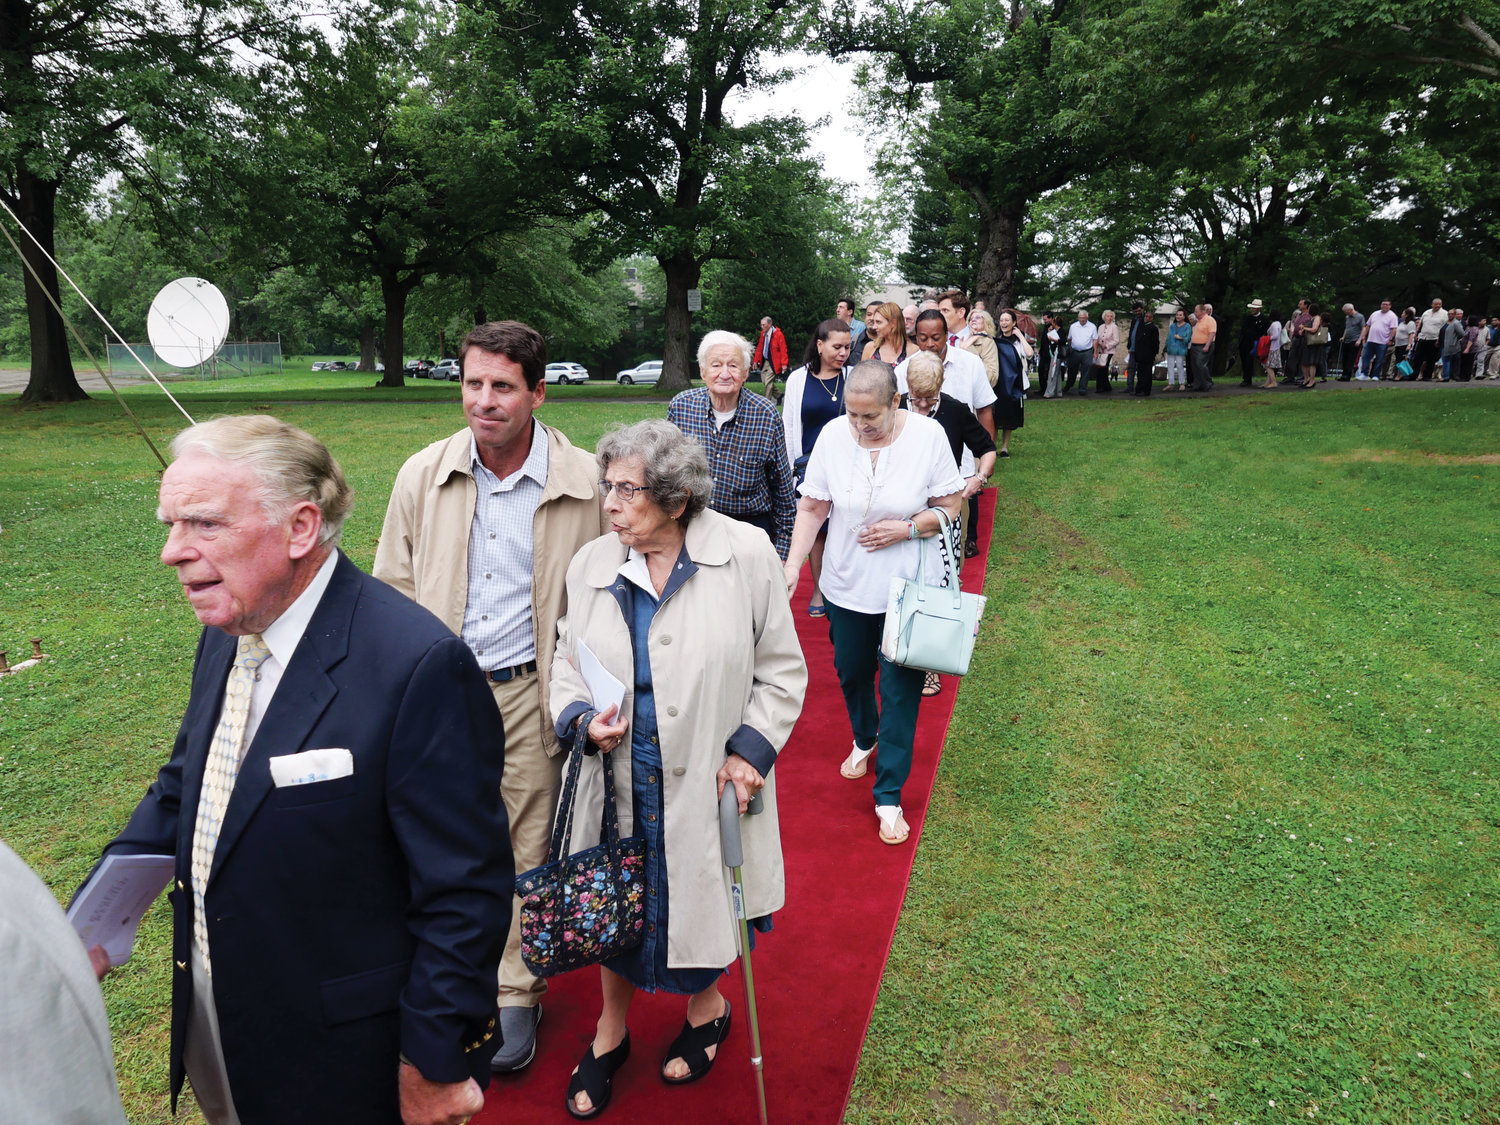 Patrons, volunteers and others associated with the archdiocesan capital campaign, Renew + Rebuild, take a walk on the red carpet to a white tent at St. Joseph Seminary in Dunwoodie for an outdoor reception June 20.